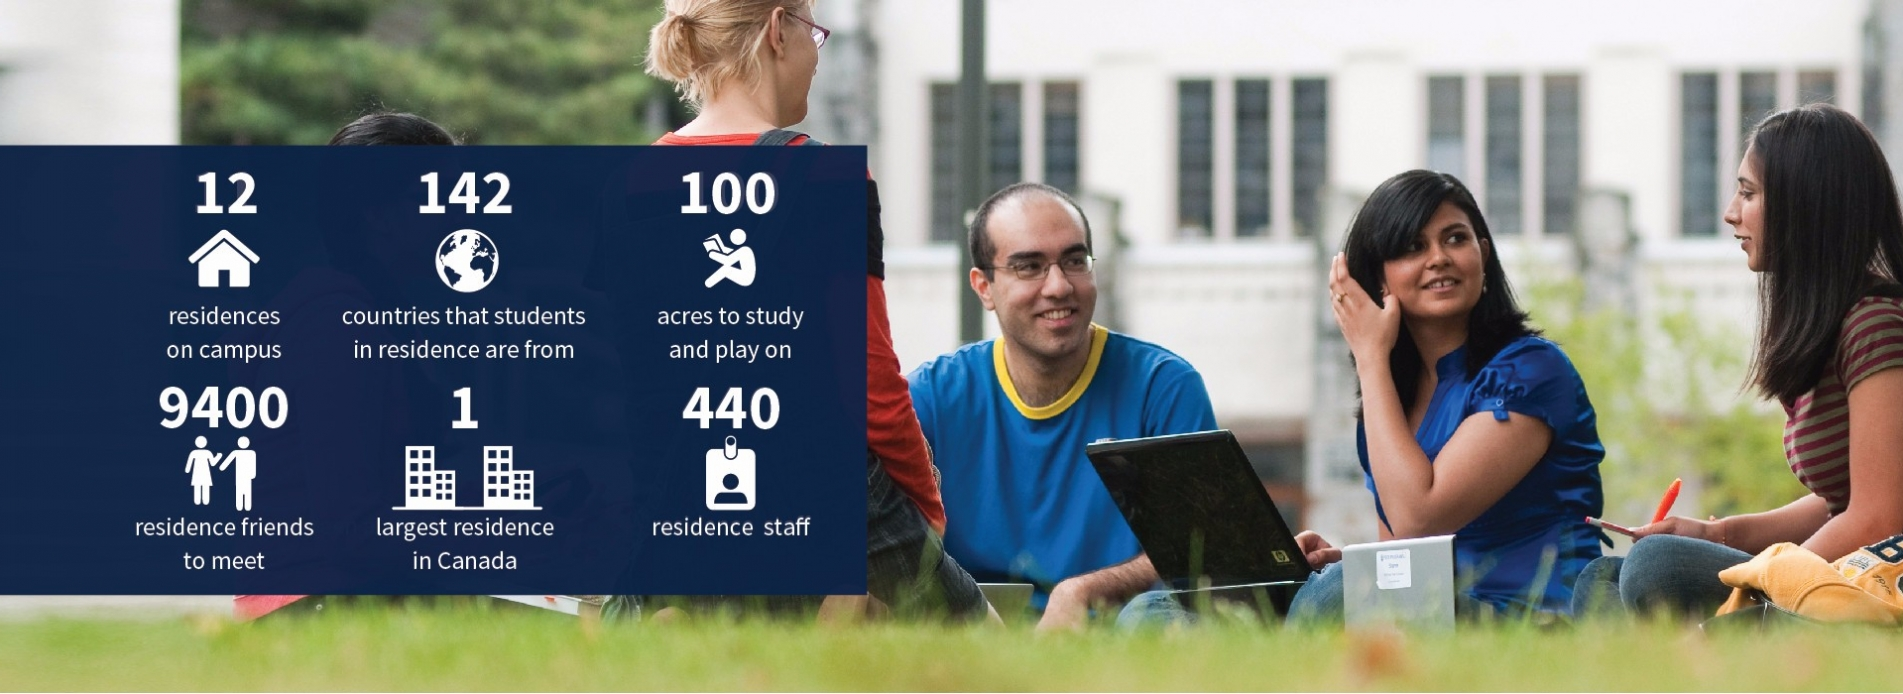 Information about residence at UBC